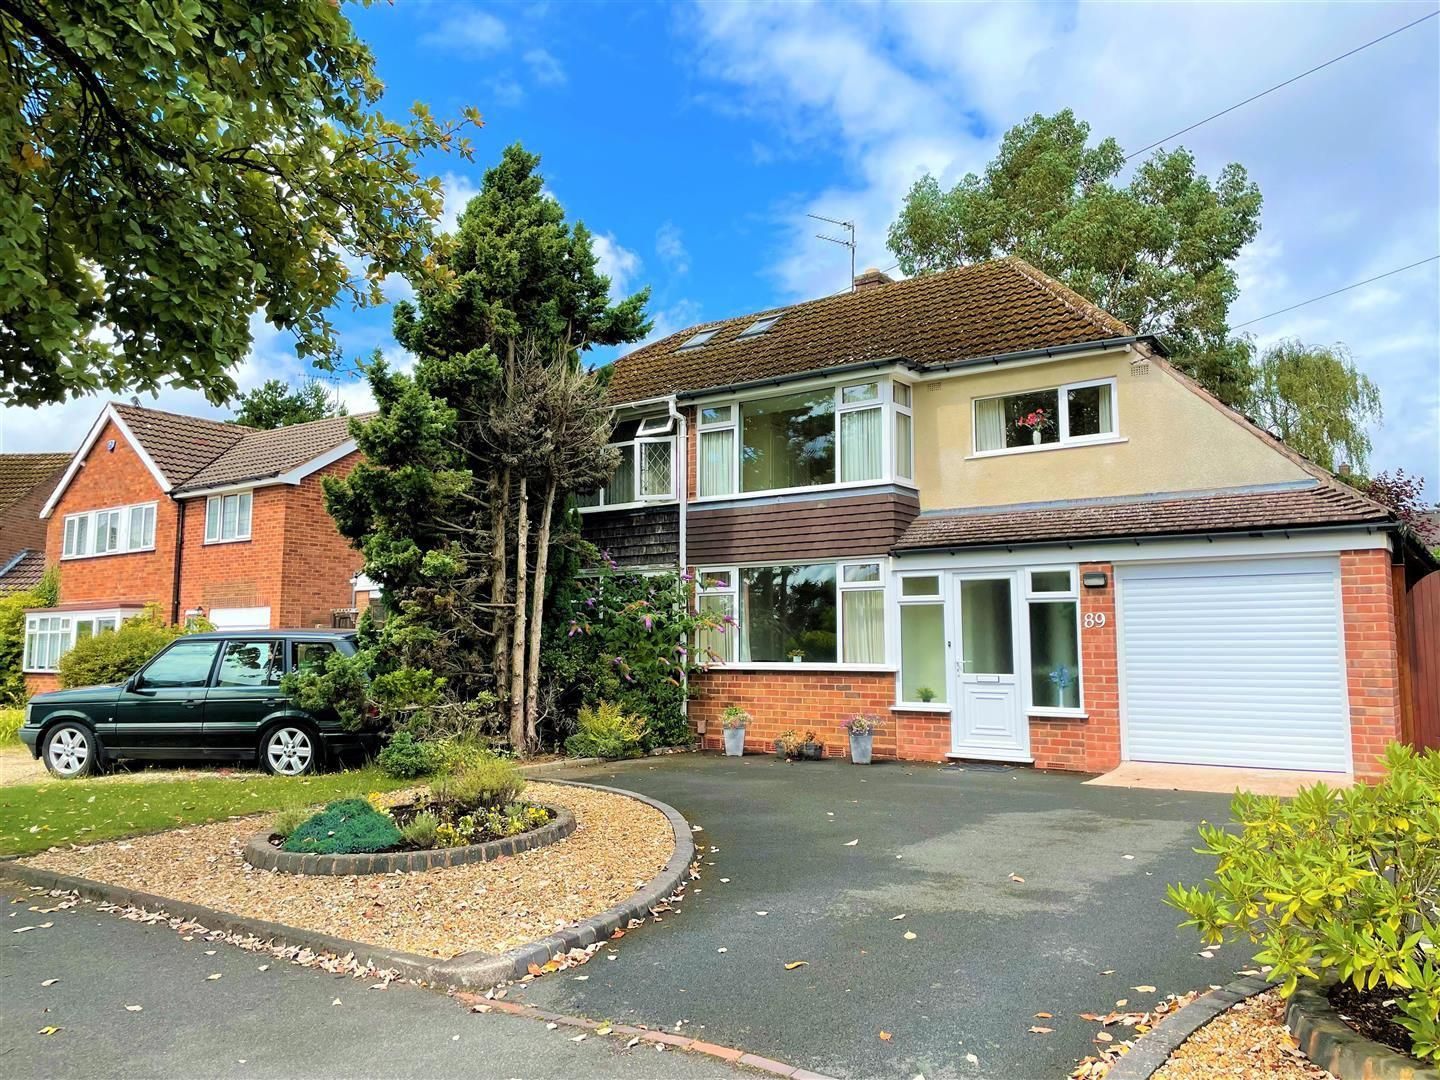 3 bed semi-detached for sale in Hagley 13